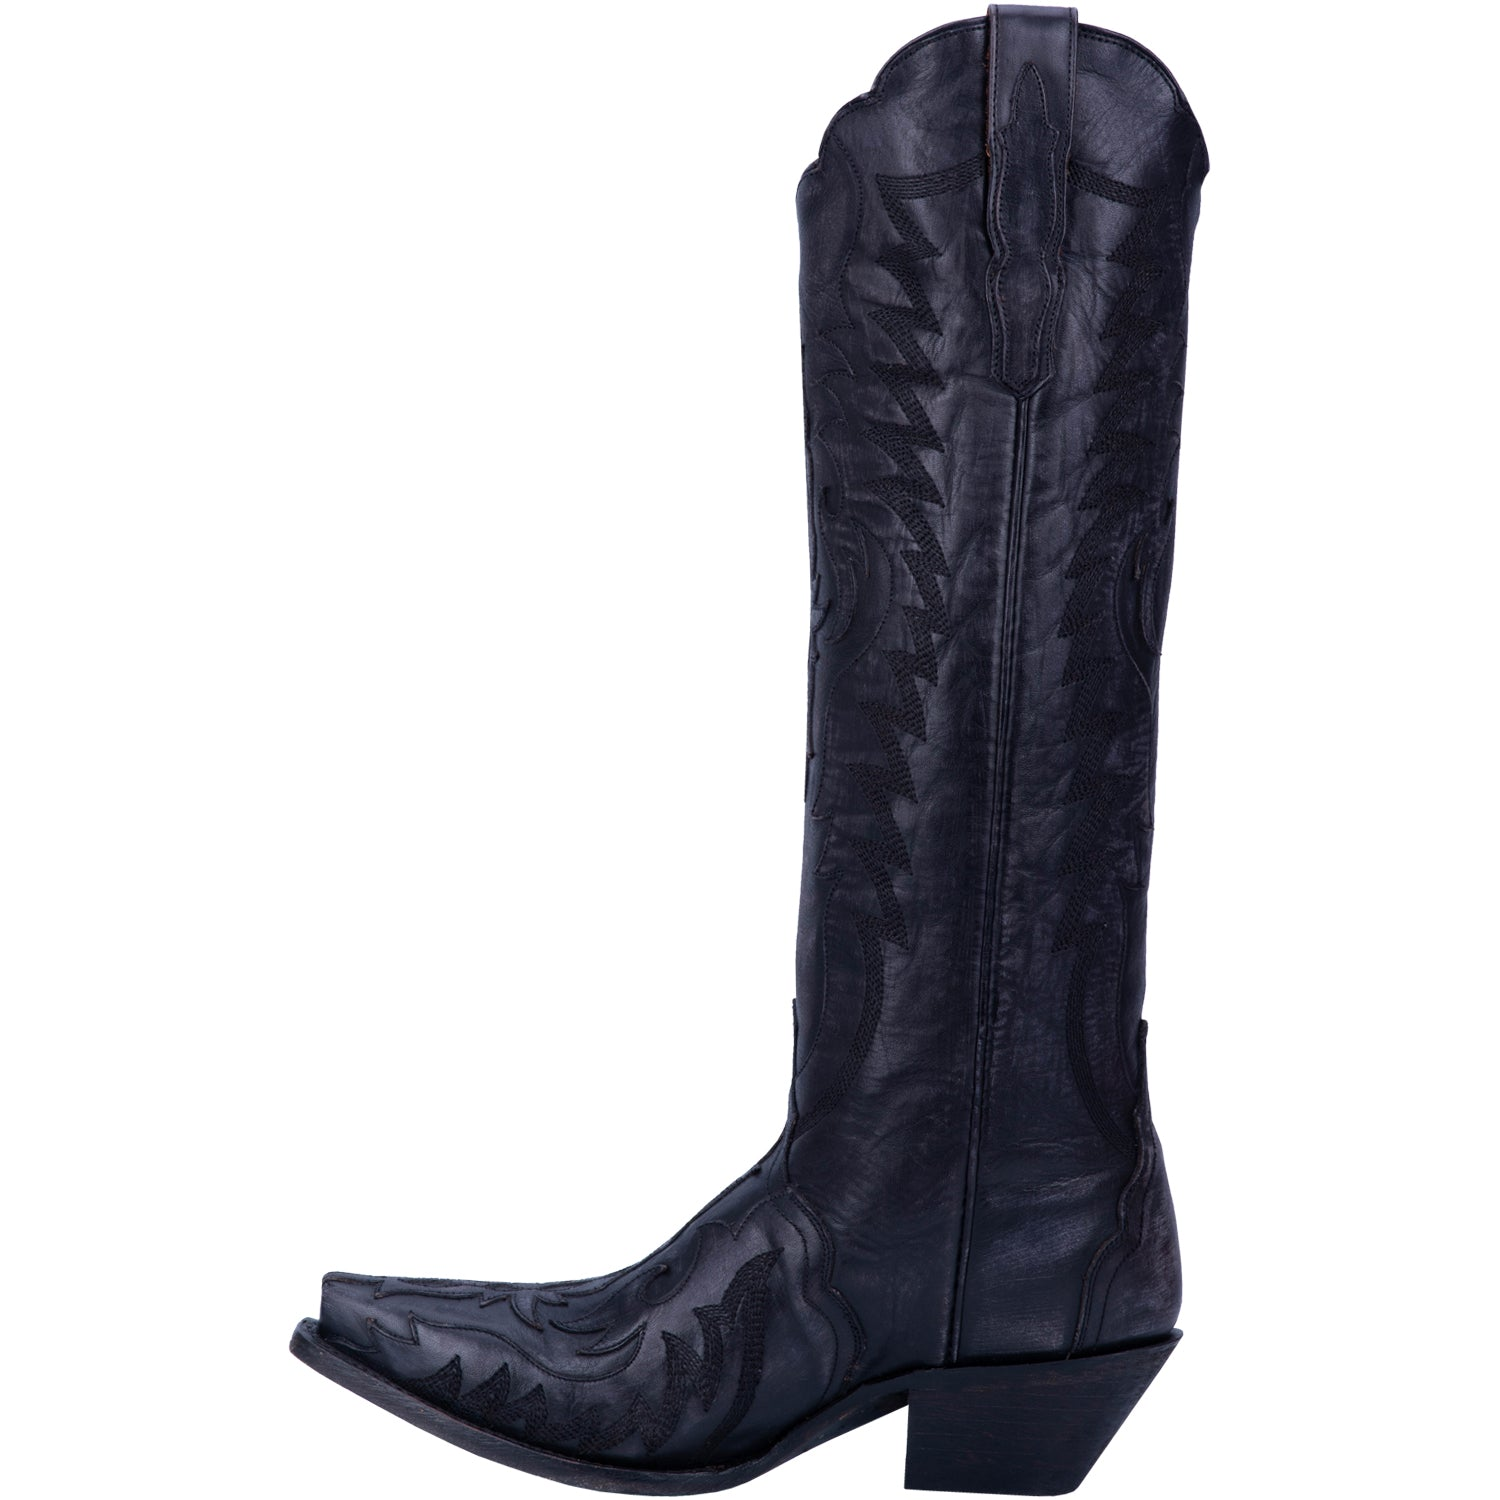 HALLIE LEATHER BOOT 5391875964970